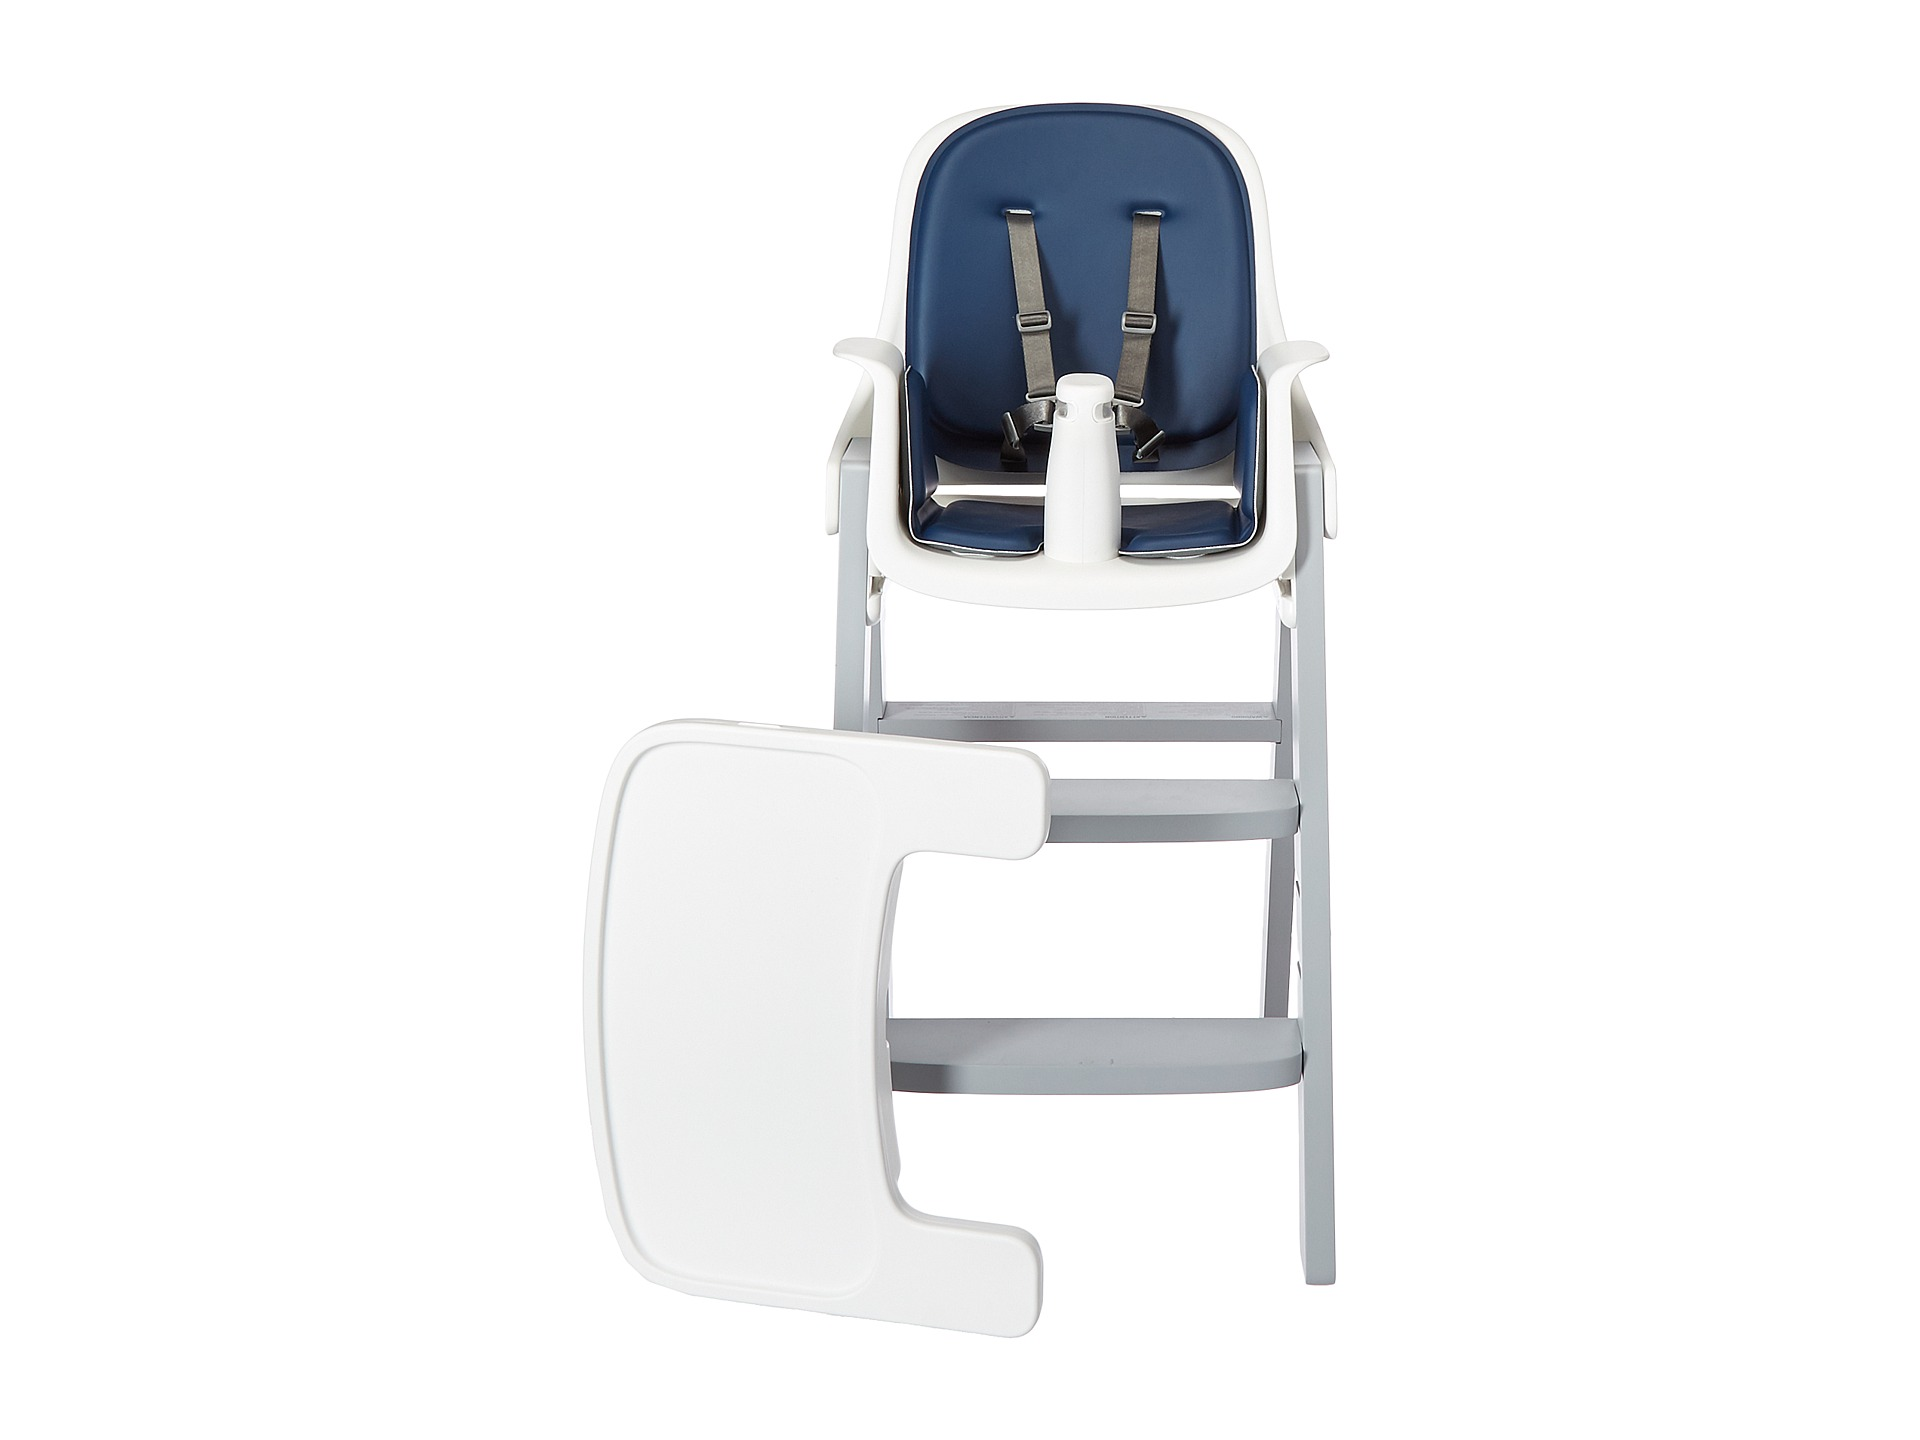 oxo tot sprout chair blue design group zappos free shipping both ways